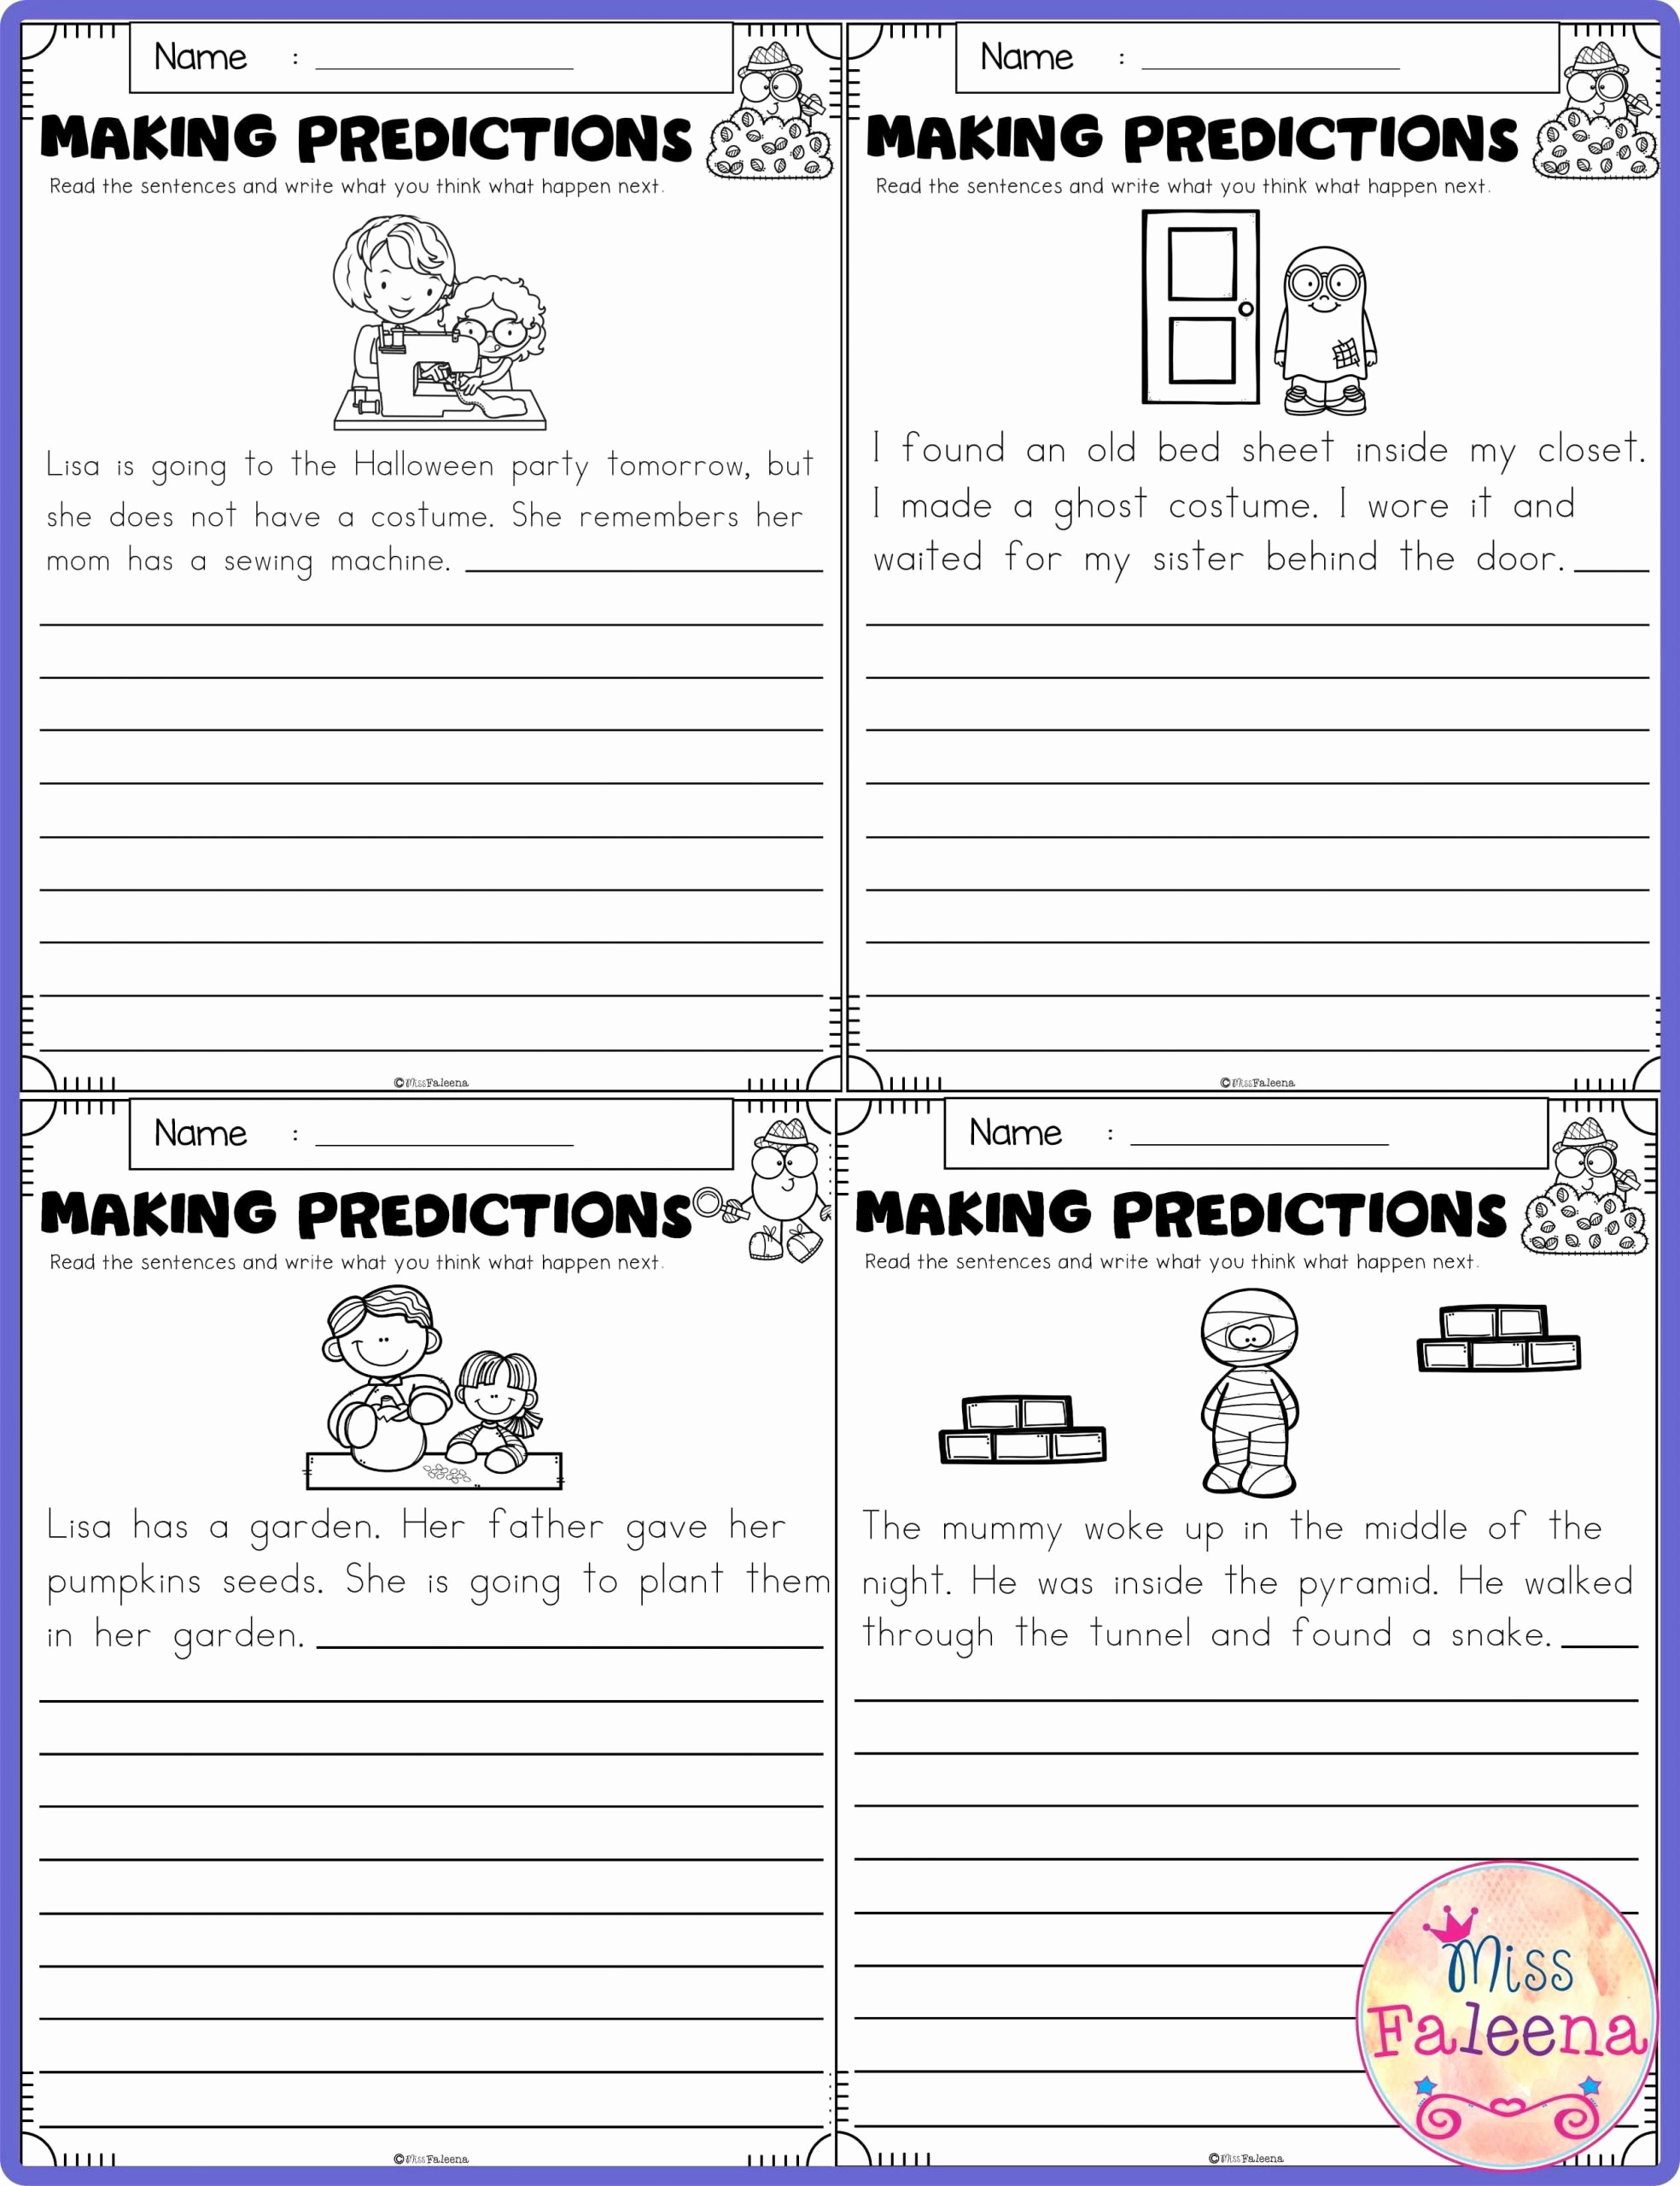 Making Predictions Worksheets 2nd Grade Best Of 20 Making Predictions Worksheet 2nd Grade